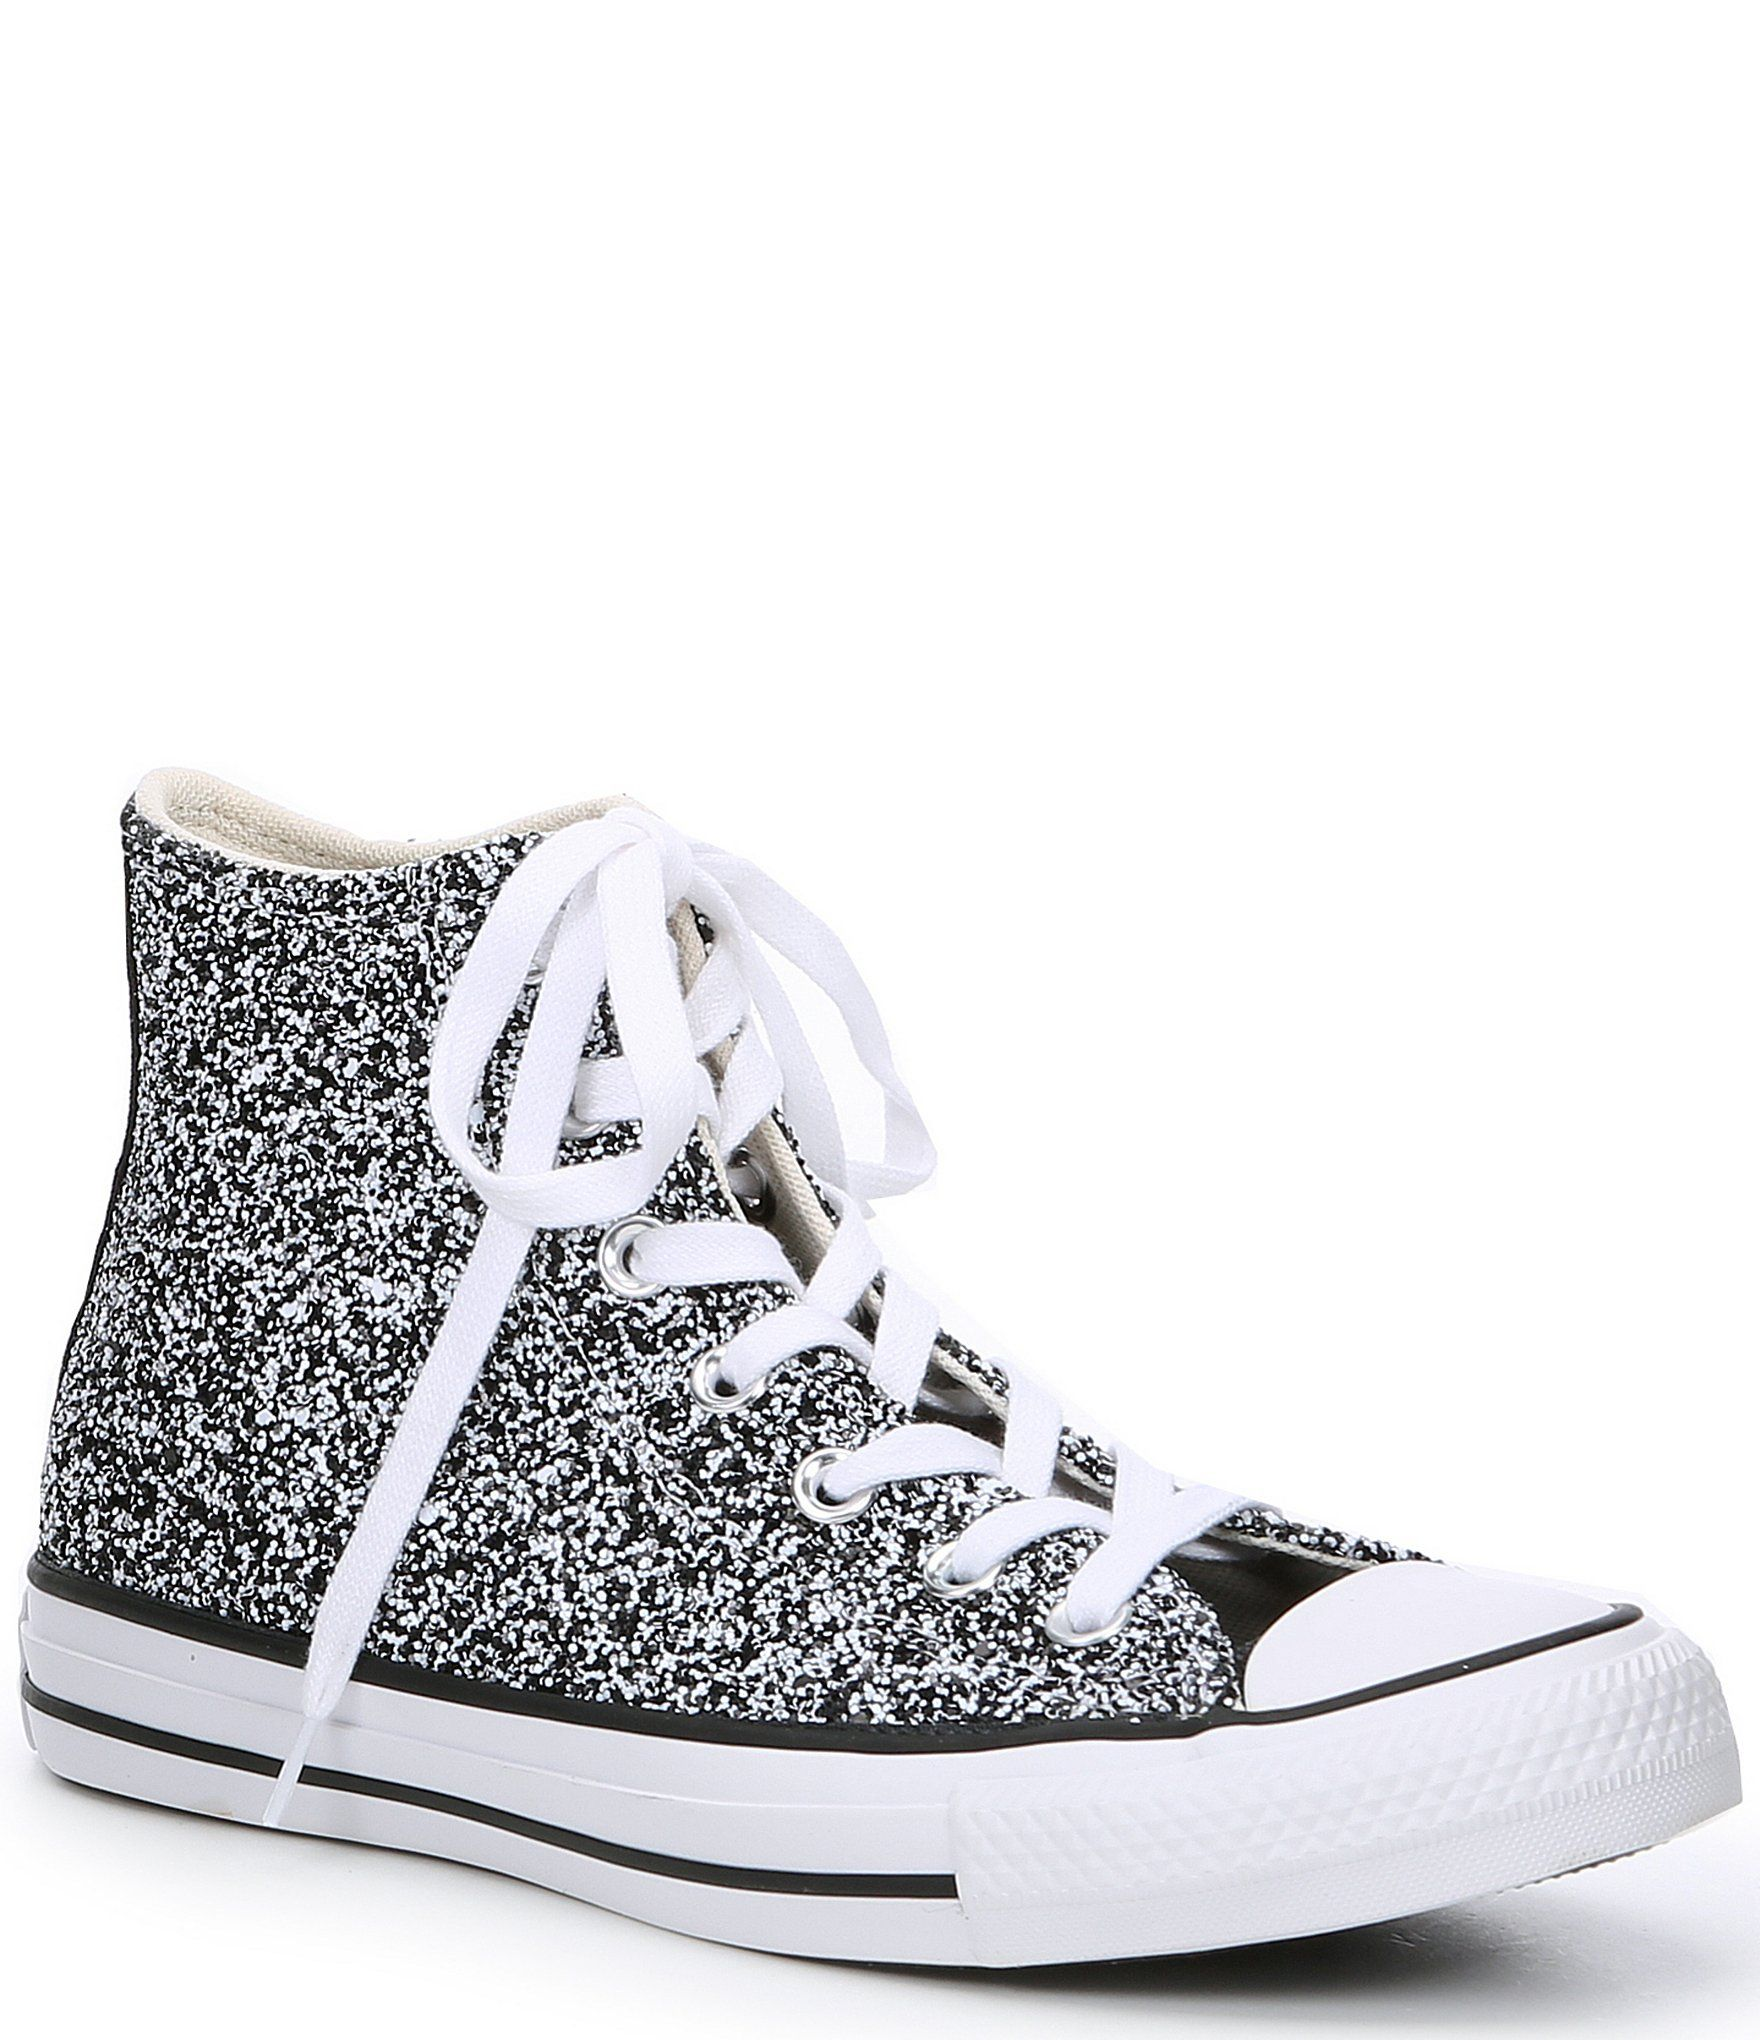 Converse Women's Chuck Taylor All Star Galaxy Dust Glitter High-Top Sneakers - Pink/Silver/White 6M #whiteallstars